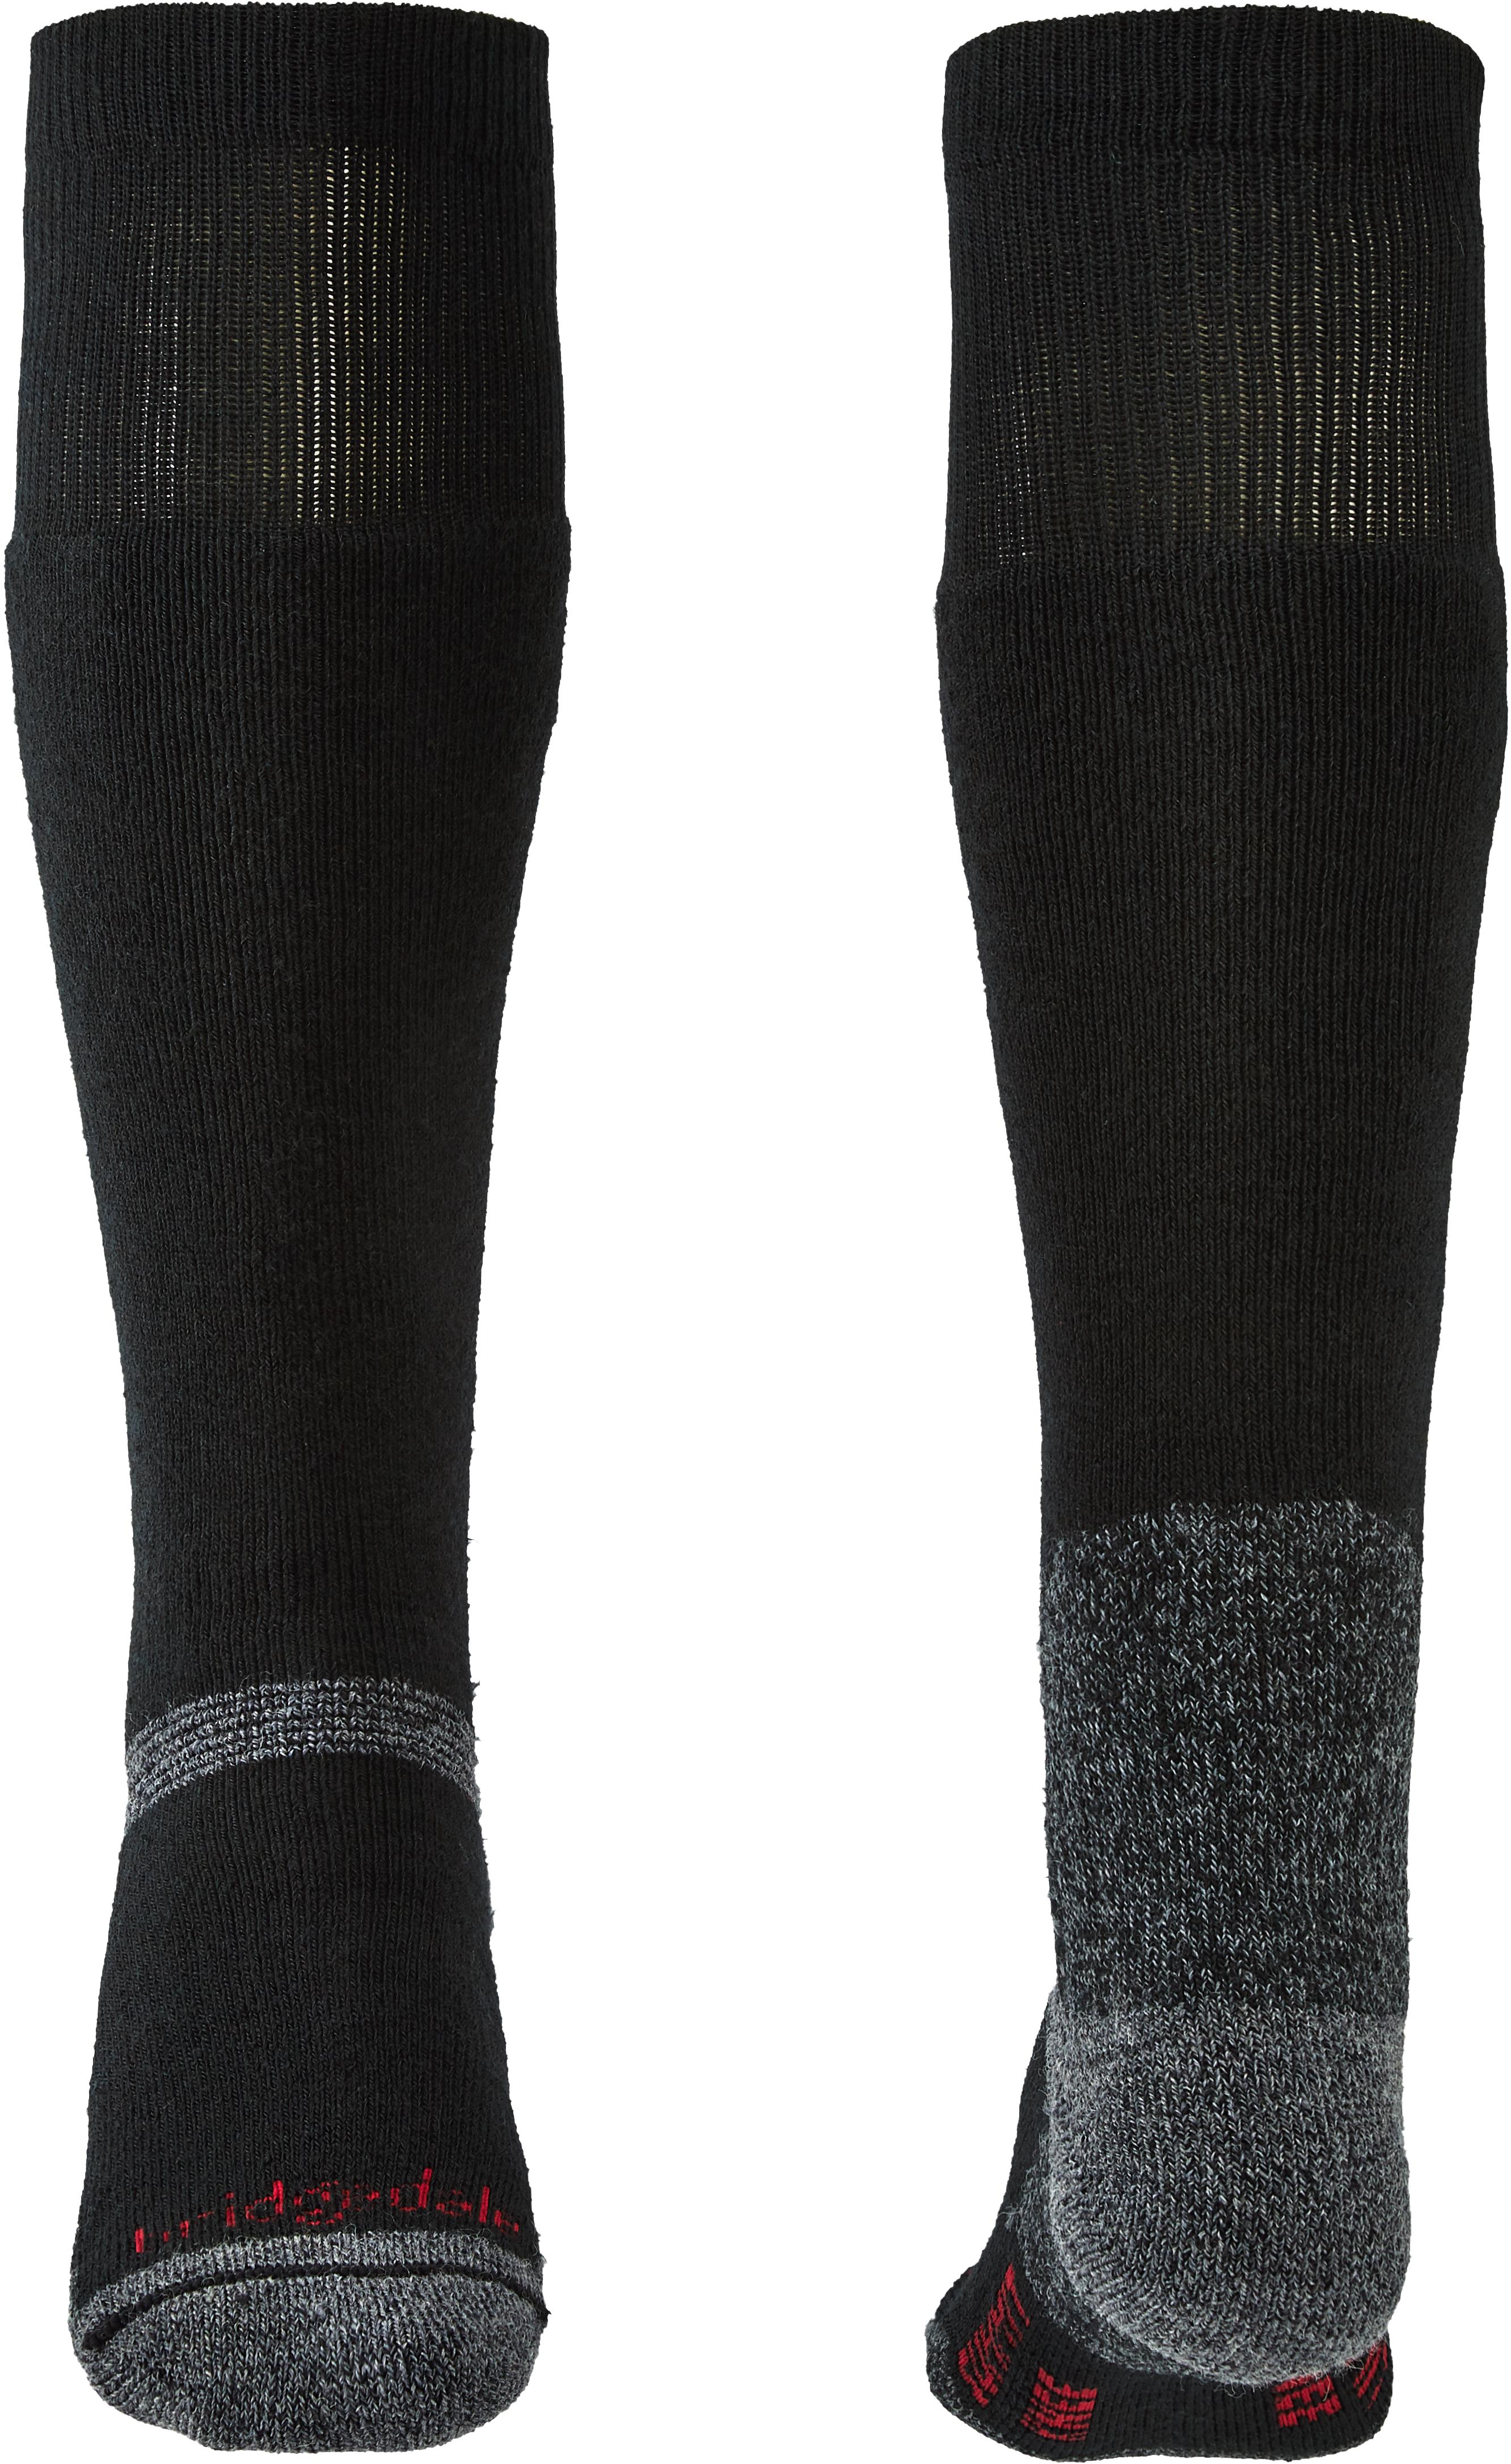 Explorer Heavyweight Merino Endurance Knee